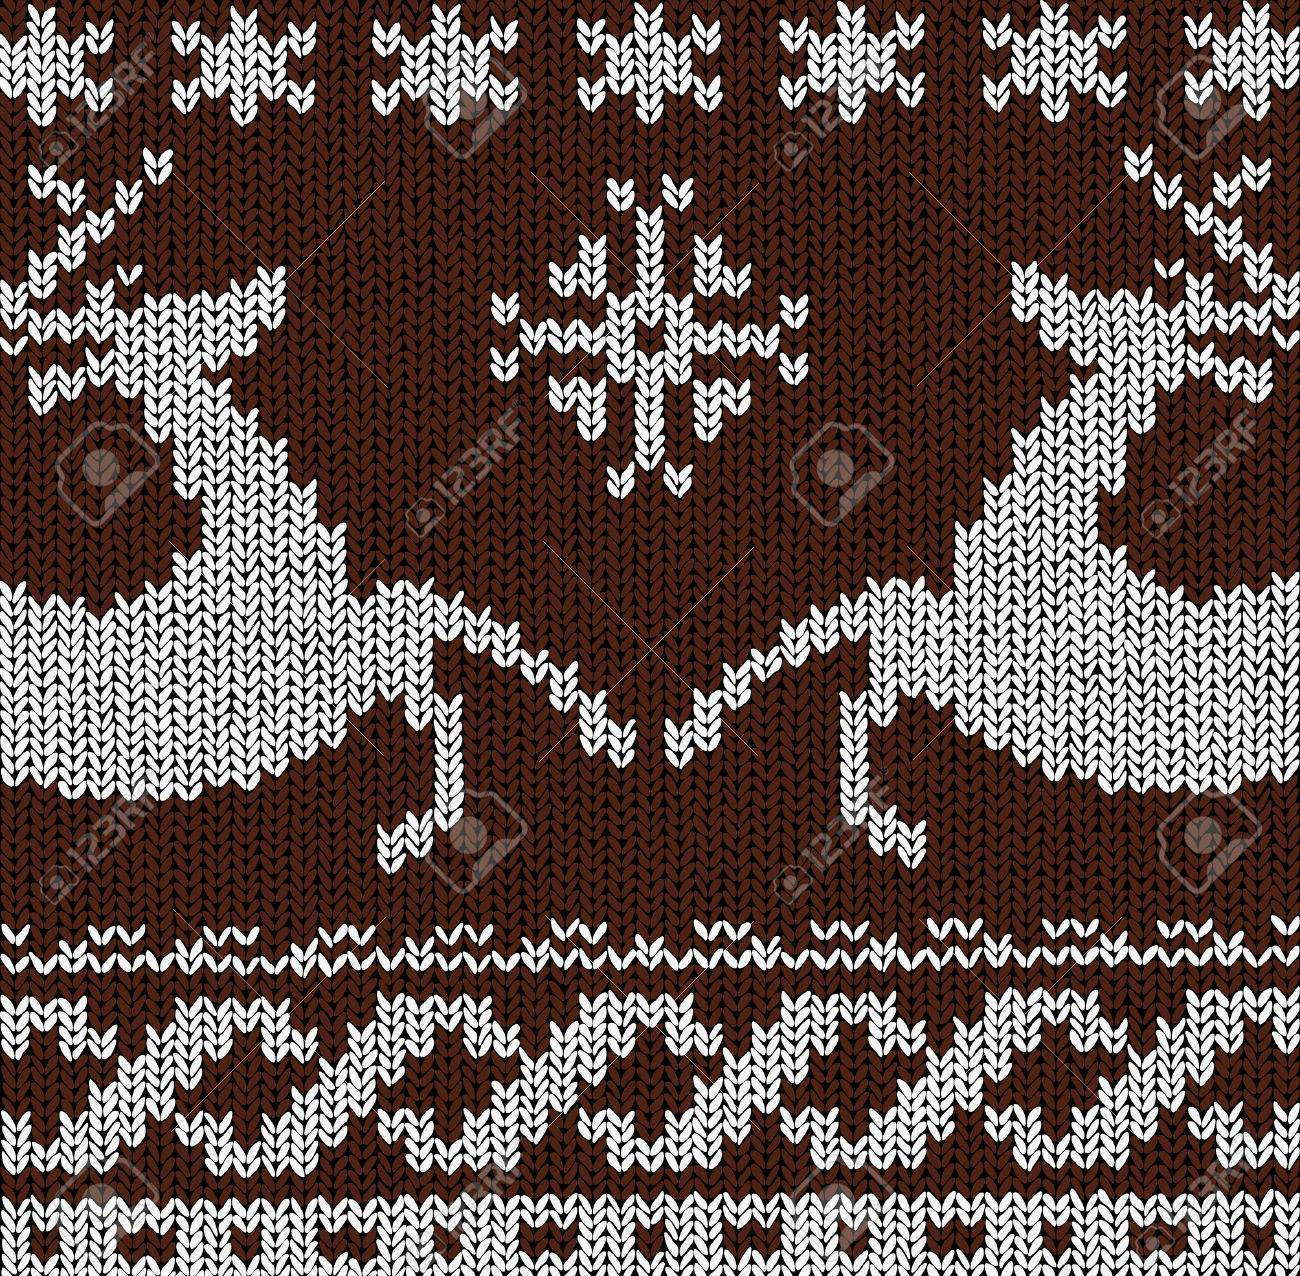 Christmas Background Norwegian Knitting Patterns Royalty Free Cliparts Vectors And Stock Illustration Image 31450934